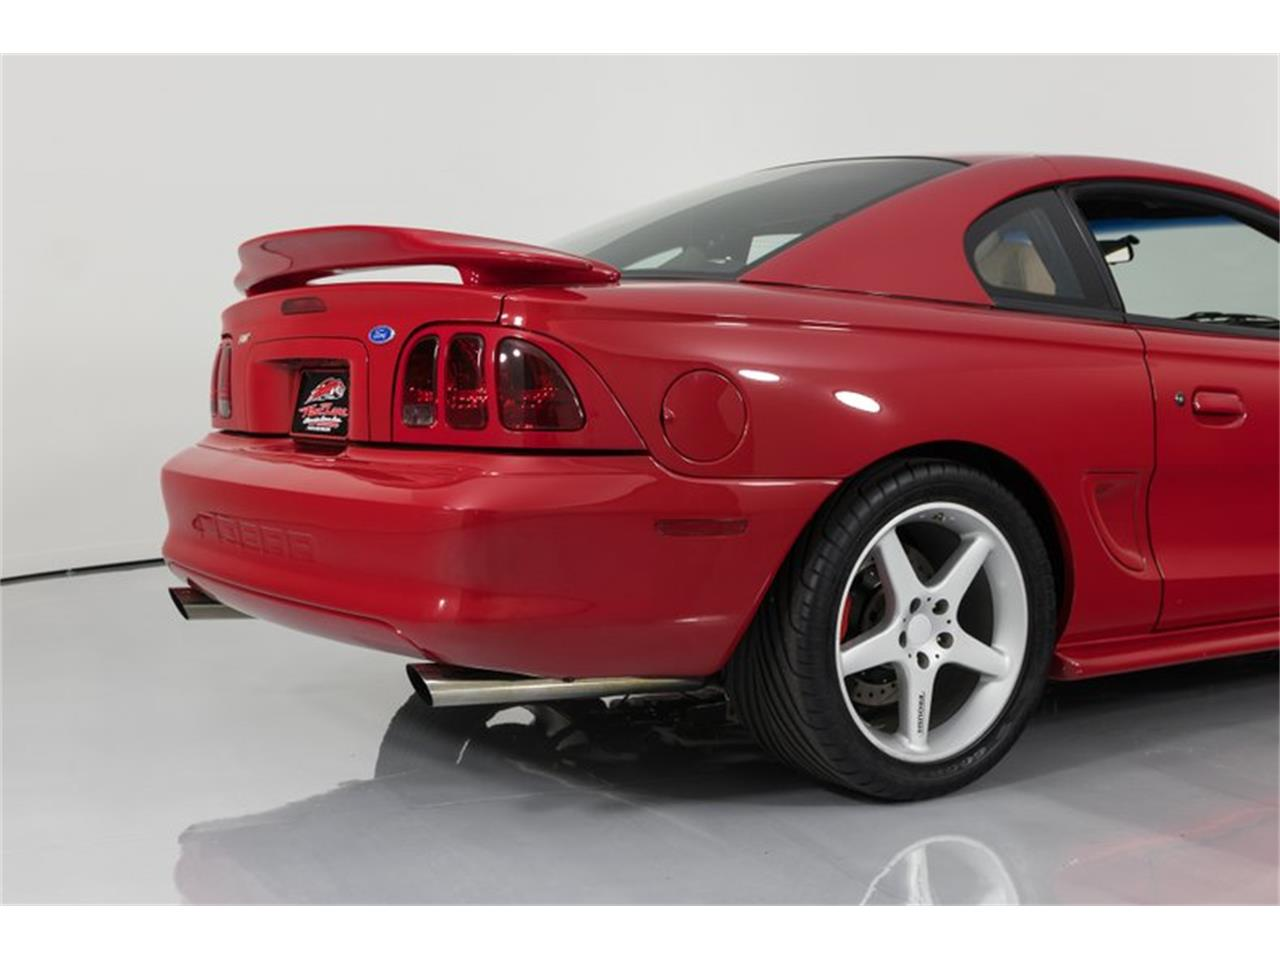 Large Picture of 1997 Ford Mustang located in St. Charles Missouri Offered by Fast Lane Classic Cars Inc. - Q83F